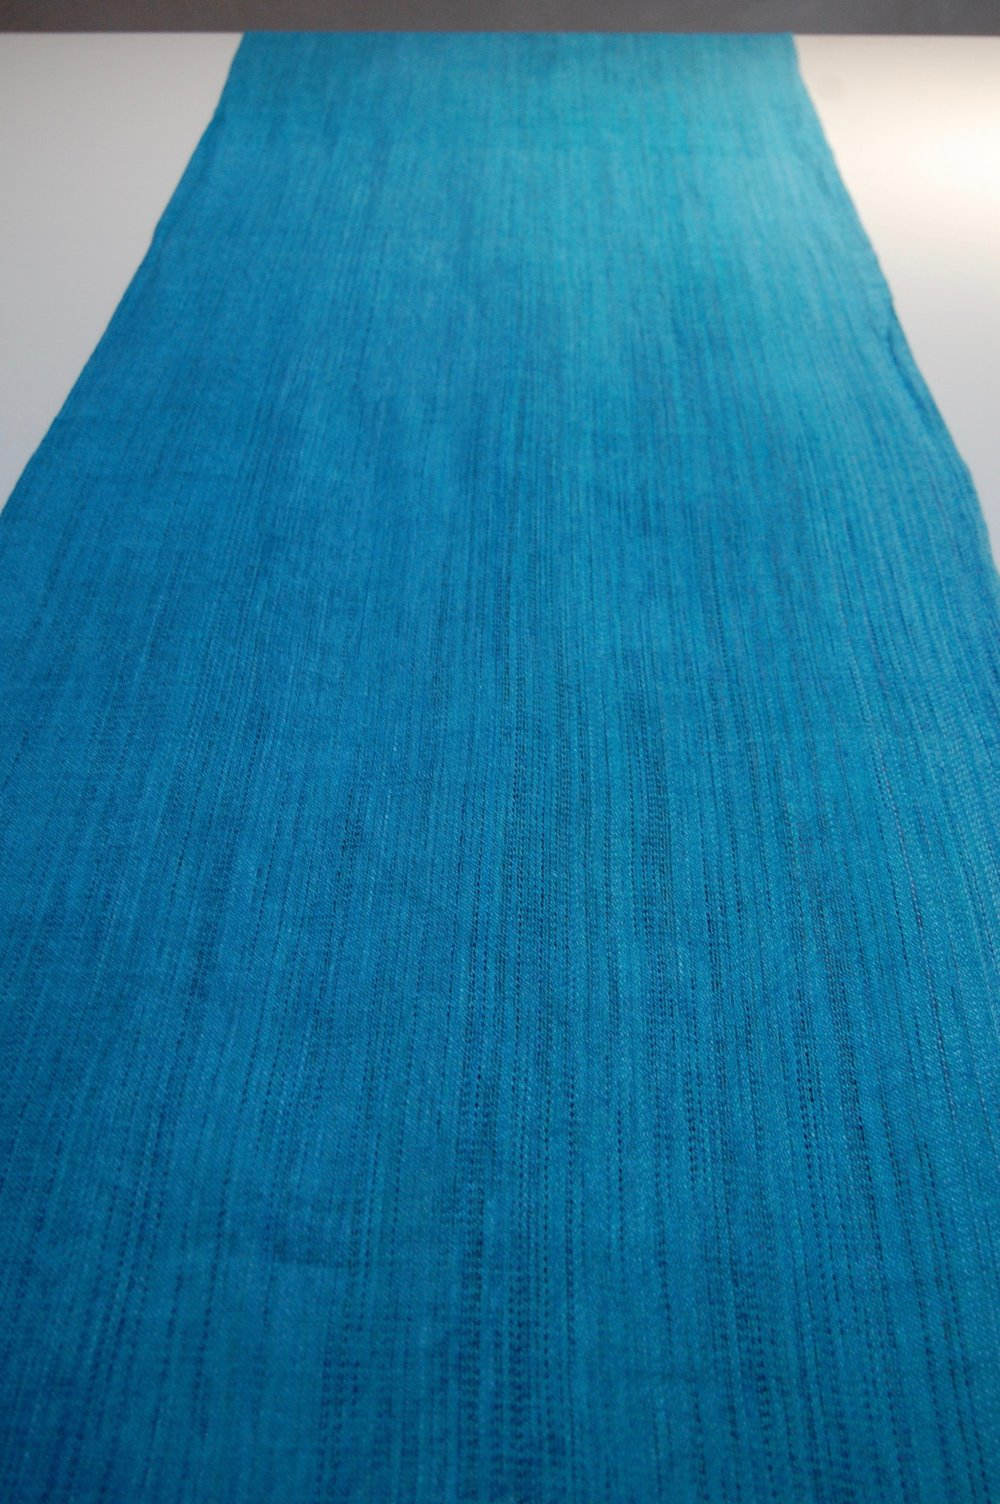 ione mulberry silk v. 2 weft 3.2 meters